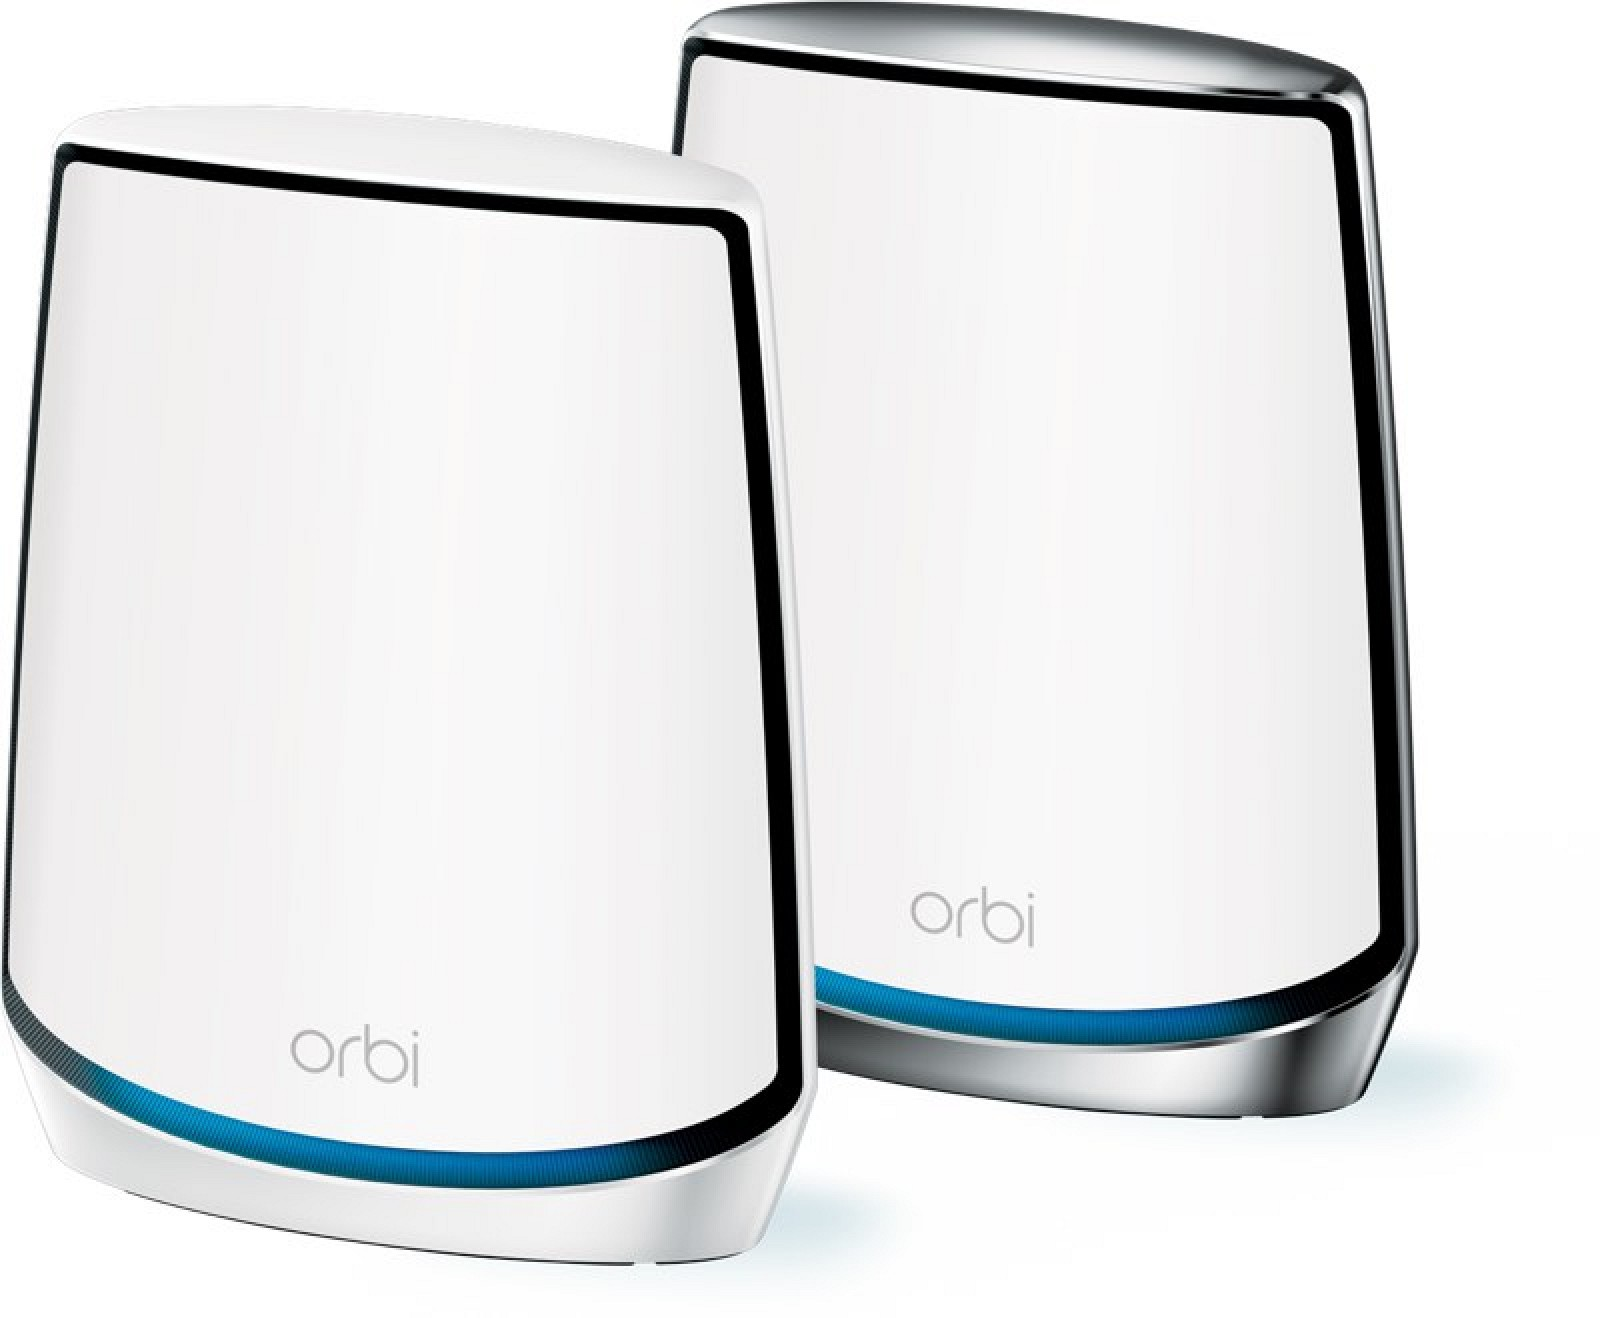 Best Mesh System 2020 CES 2019: Netgear Unveils New Orbi 802.11ax Mesh Wi Fi System for